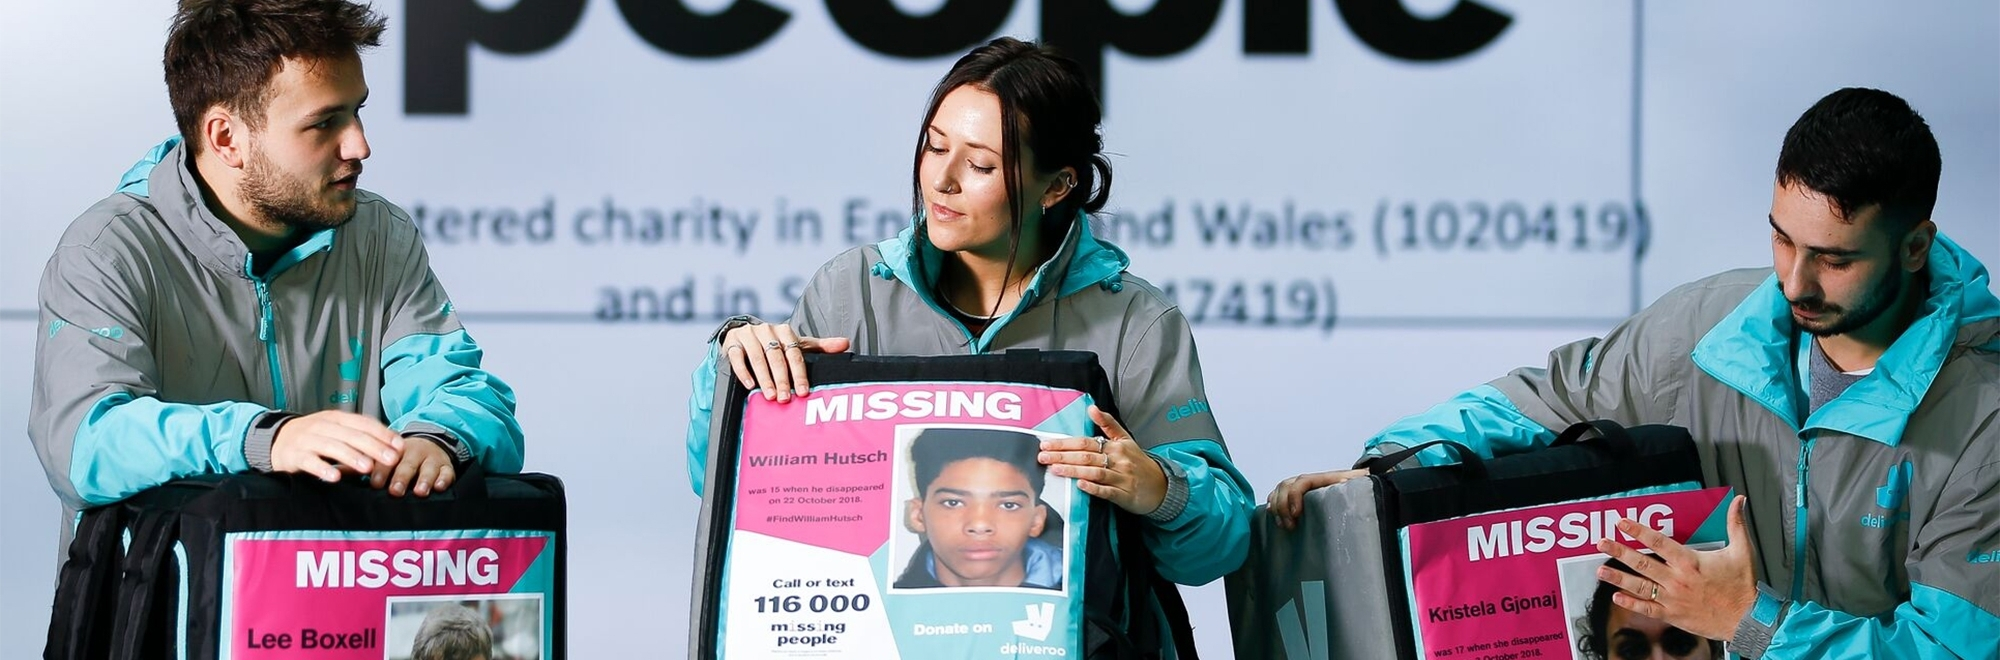 Deliveroo's drive to reunite missing people with their families before Christmas is a great idea, but did it deliver?